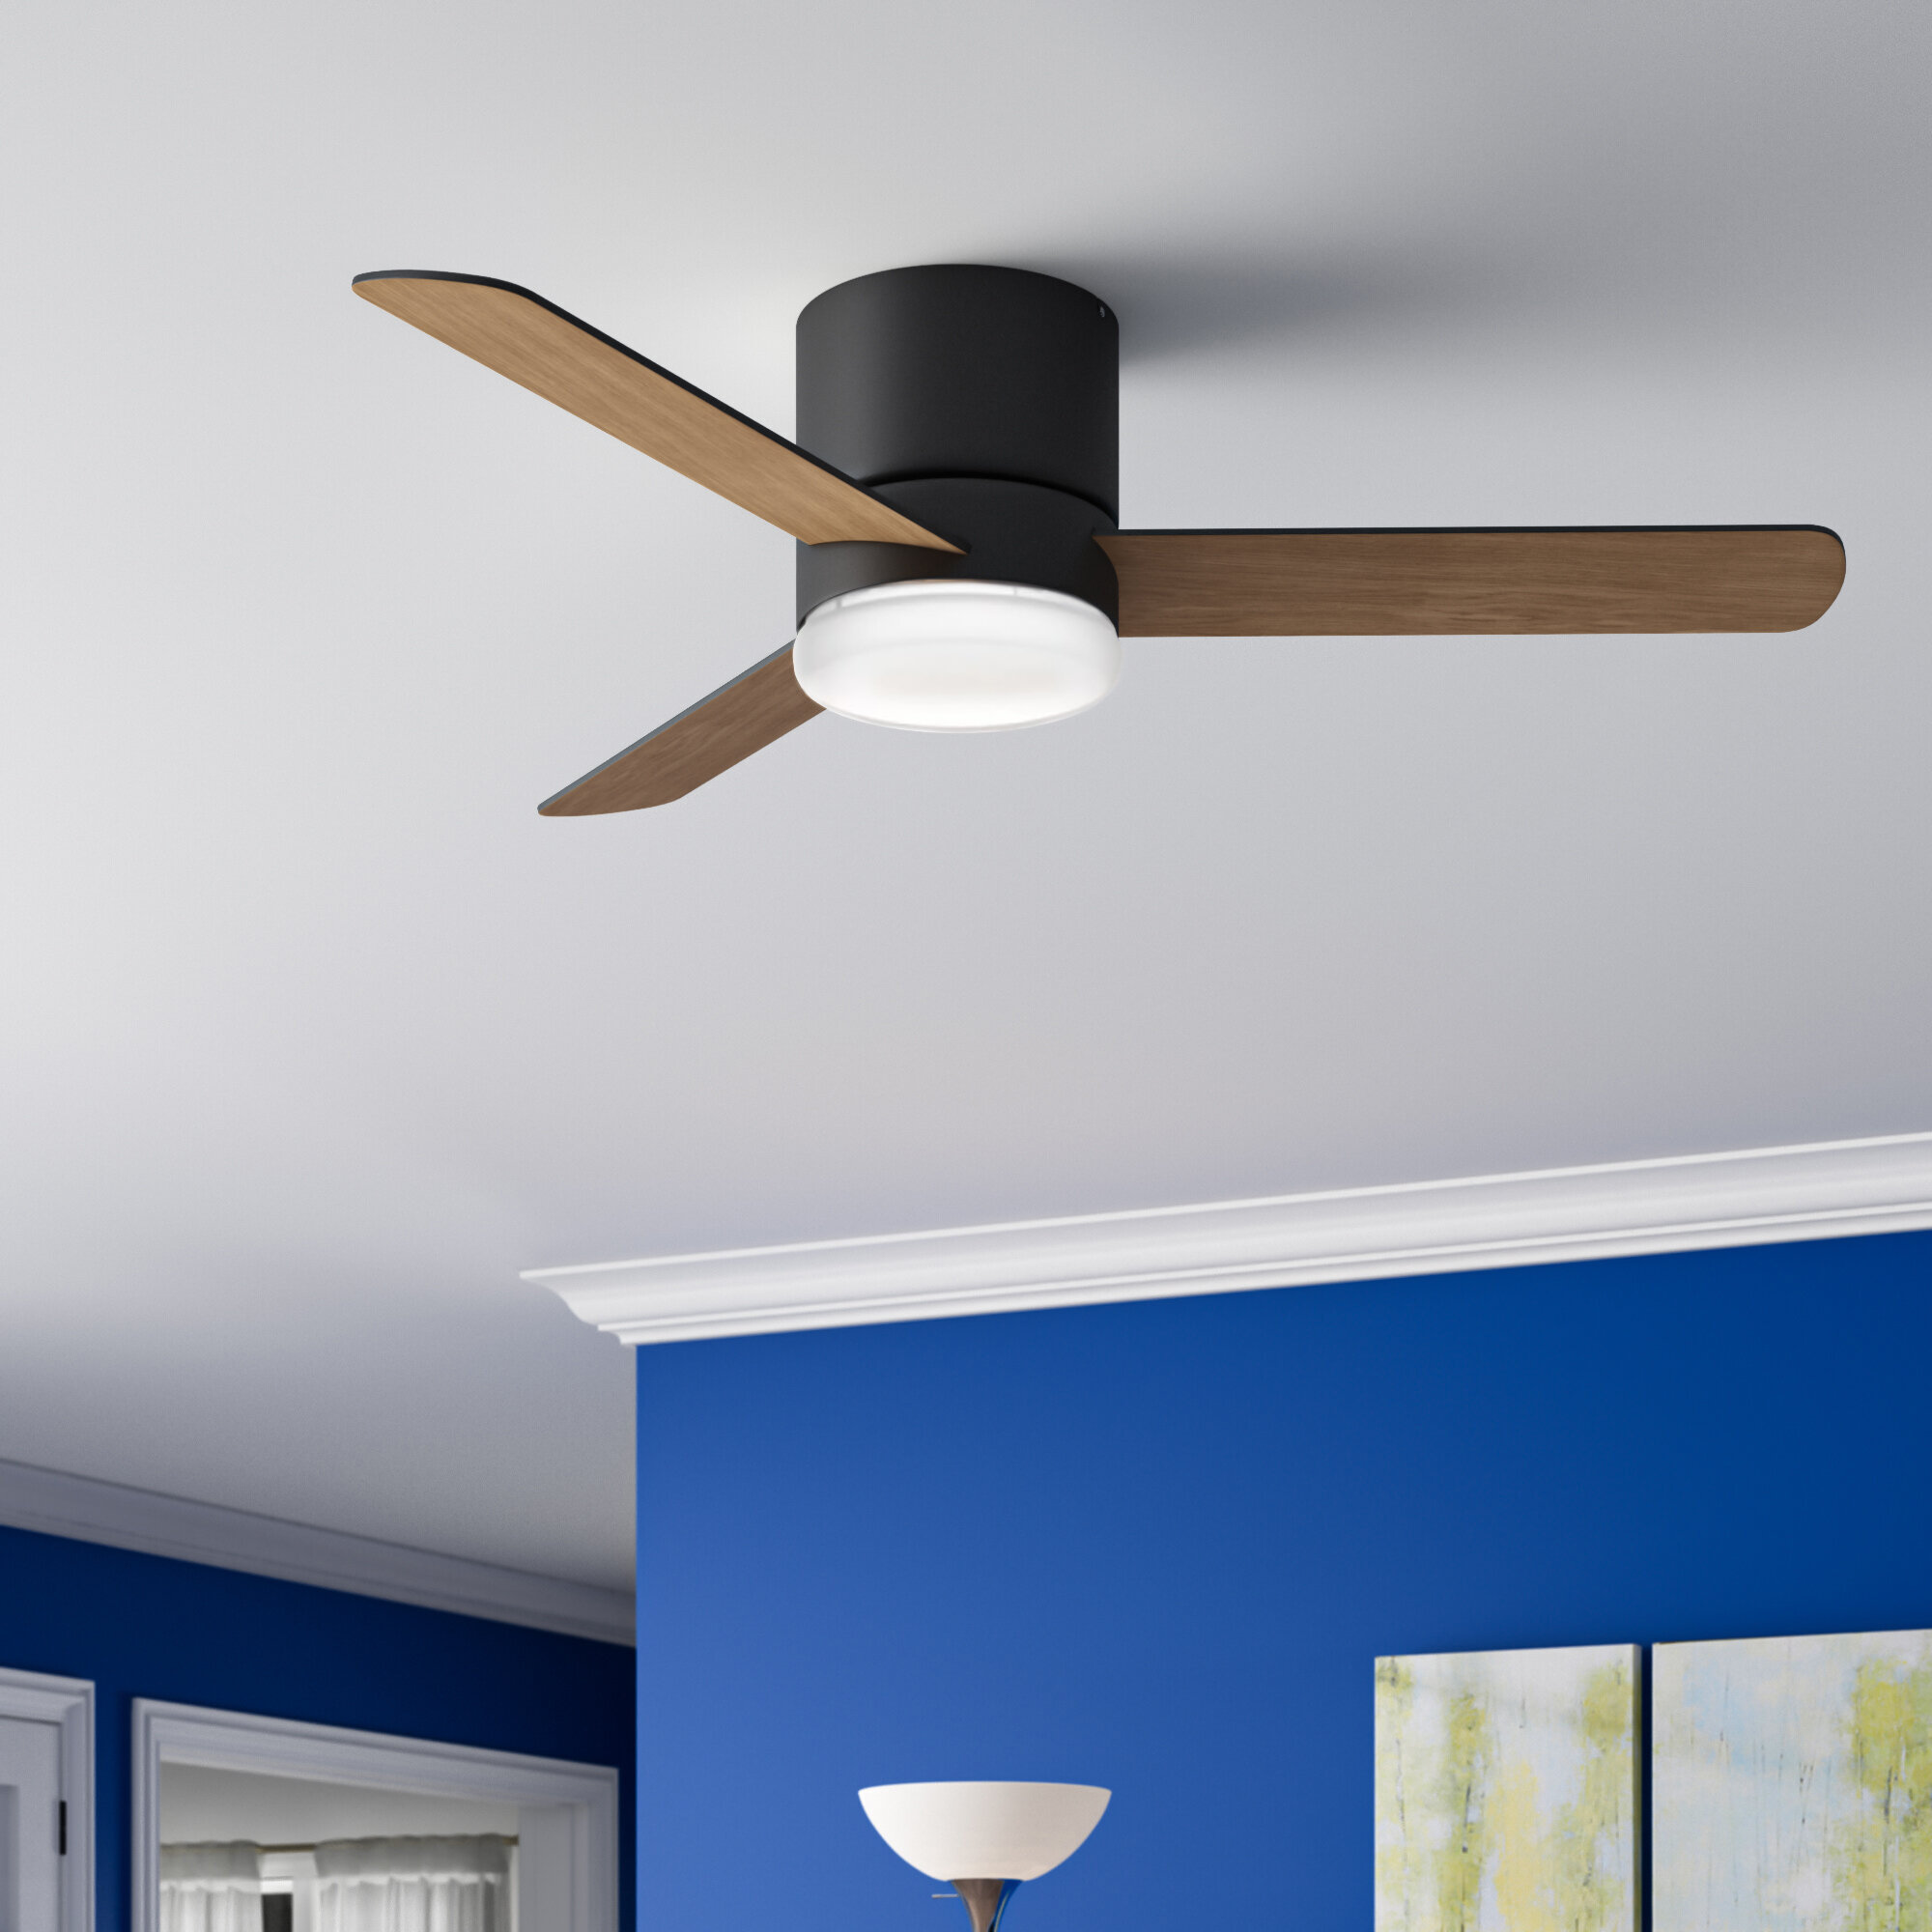 Hunter Fan 44 Minimus 3 Blade Led Flush Mount Ceiling Fan With Remote Control And Light Kit Included Reviews Wayfair